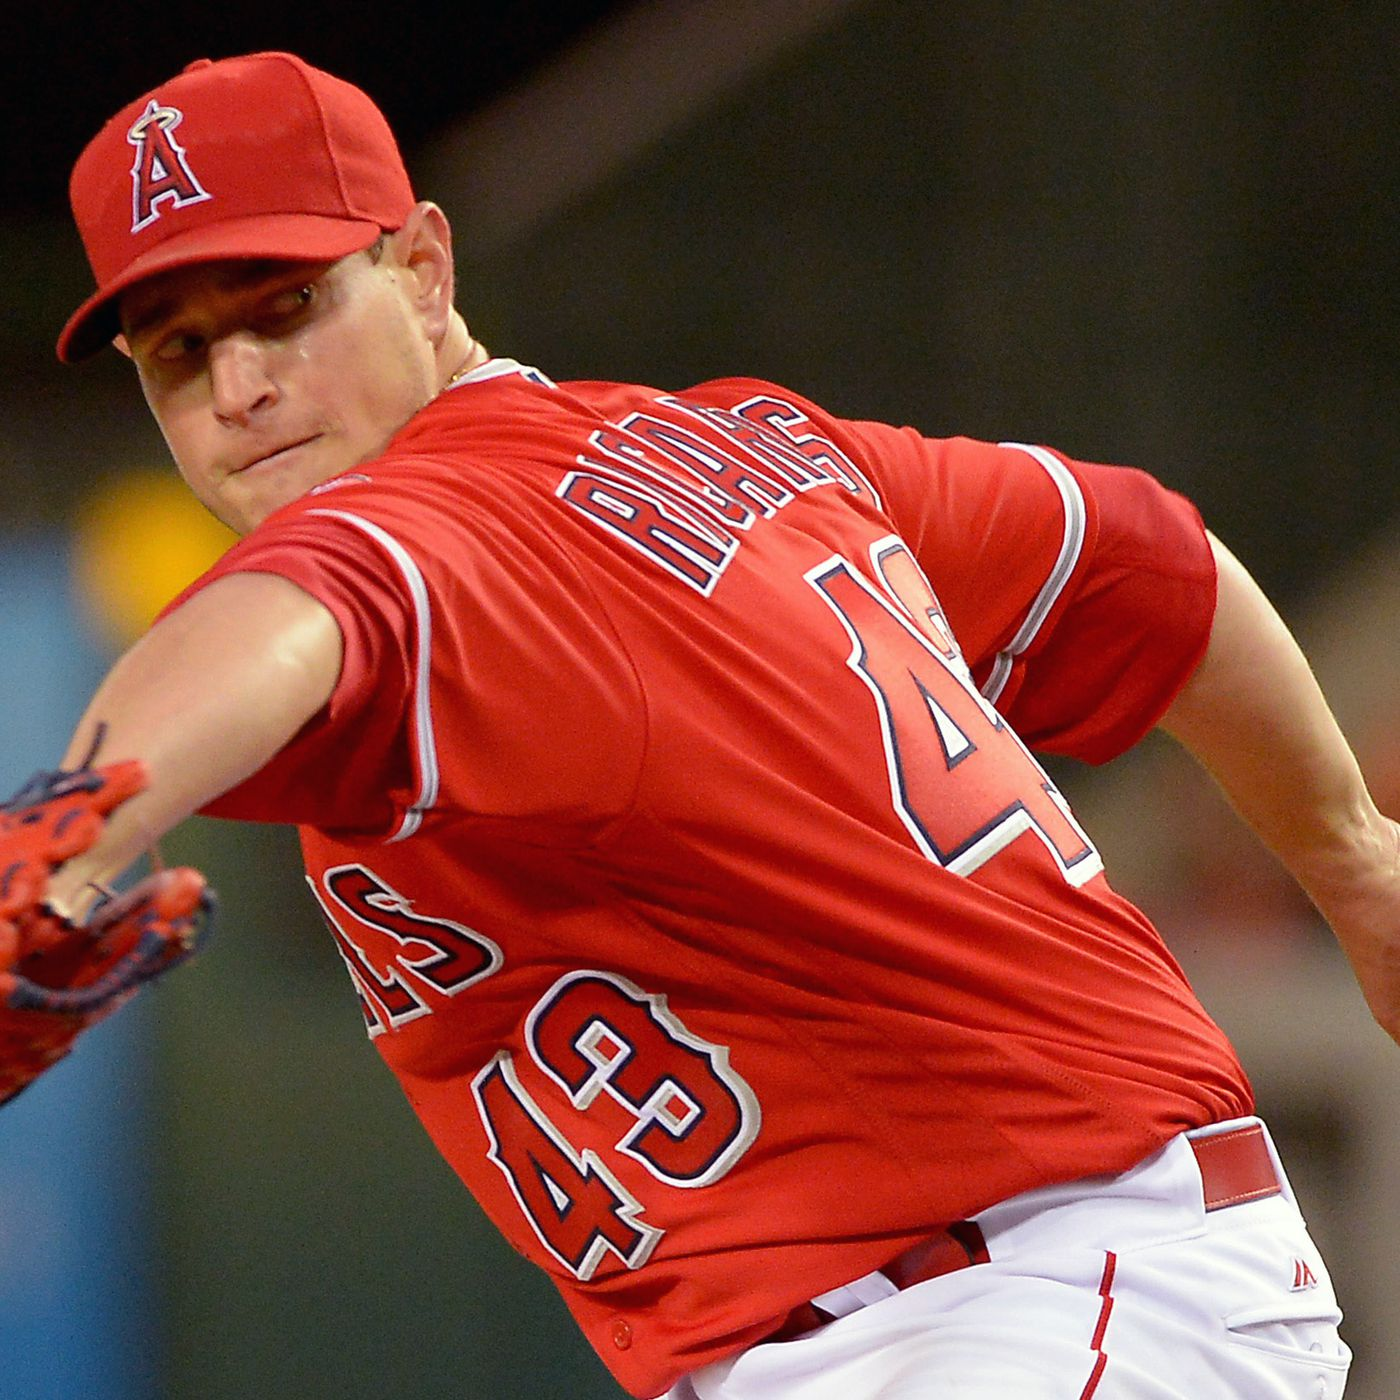 Its impossible to describe just how hosed the angels are sbnation malvernweather Images